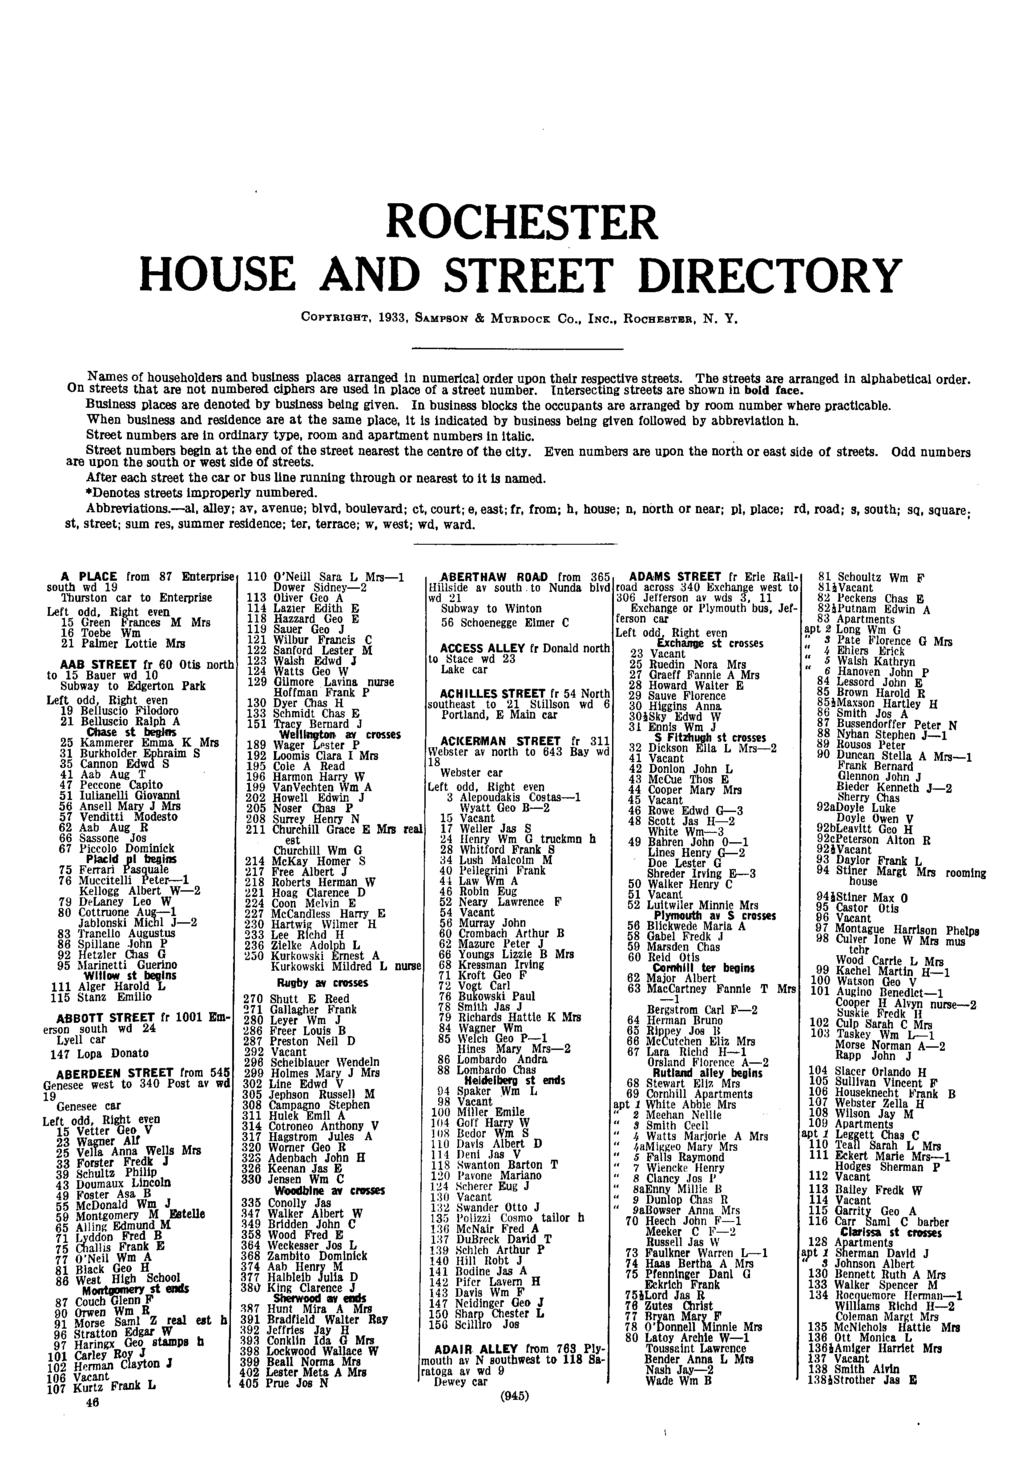 Central Library of Rocester and Monroe County - City Directory Collection -  1934   ROCHESTER HOUSE ed1645b566cd7